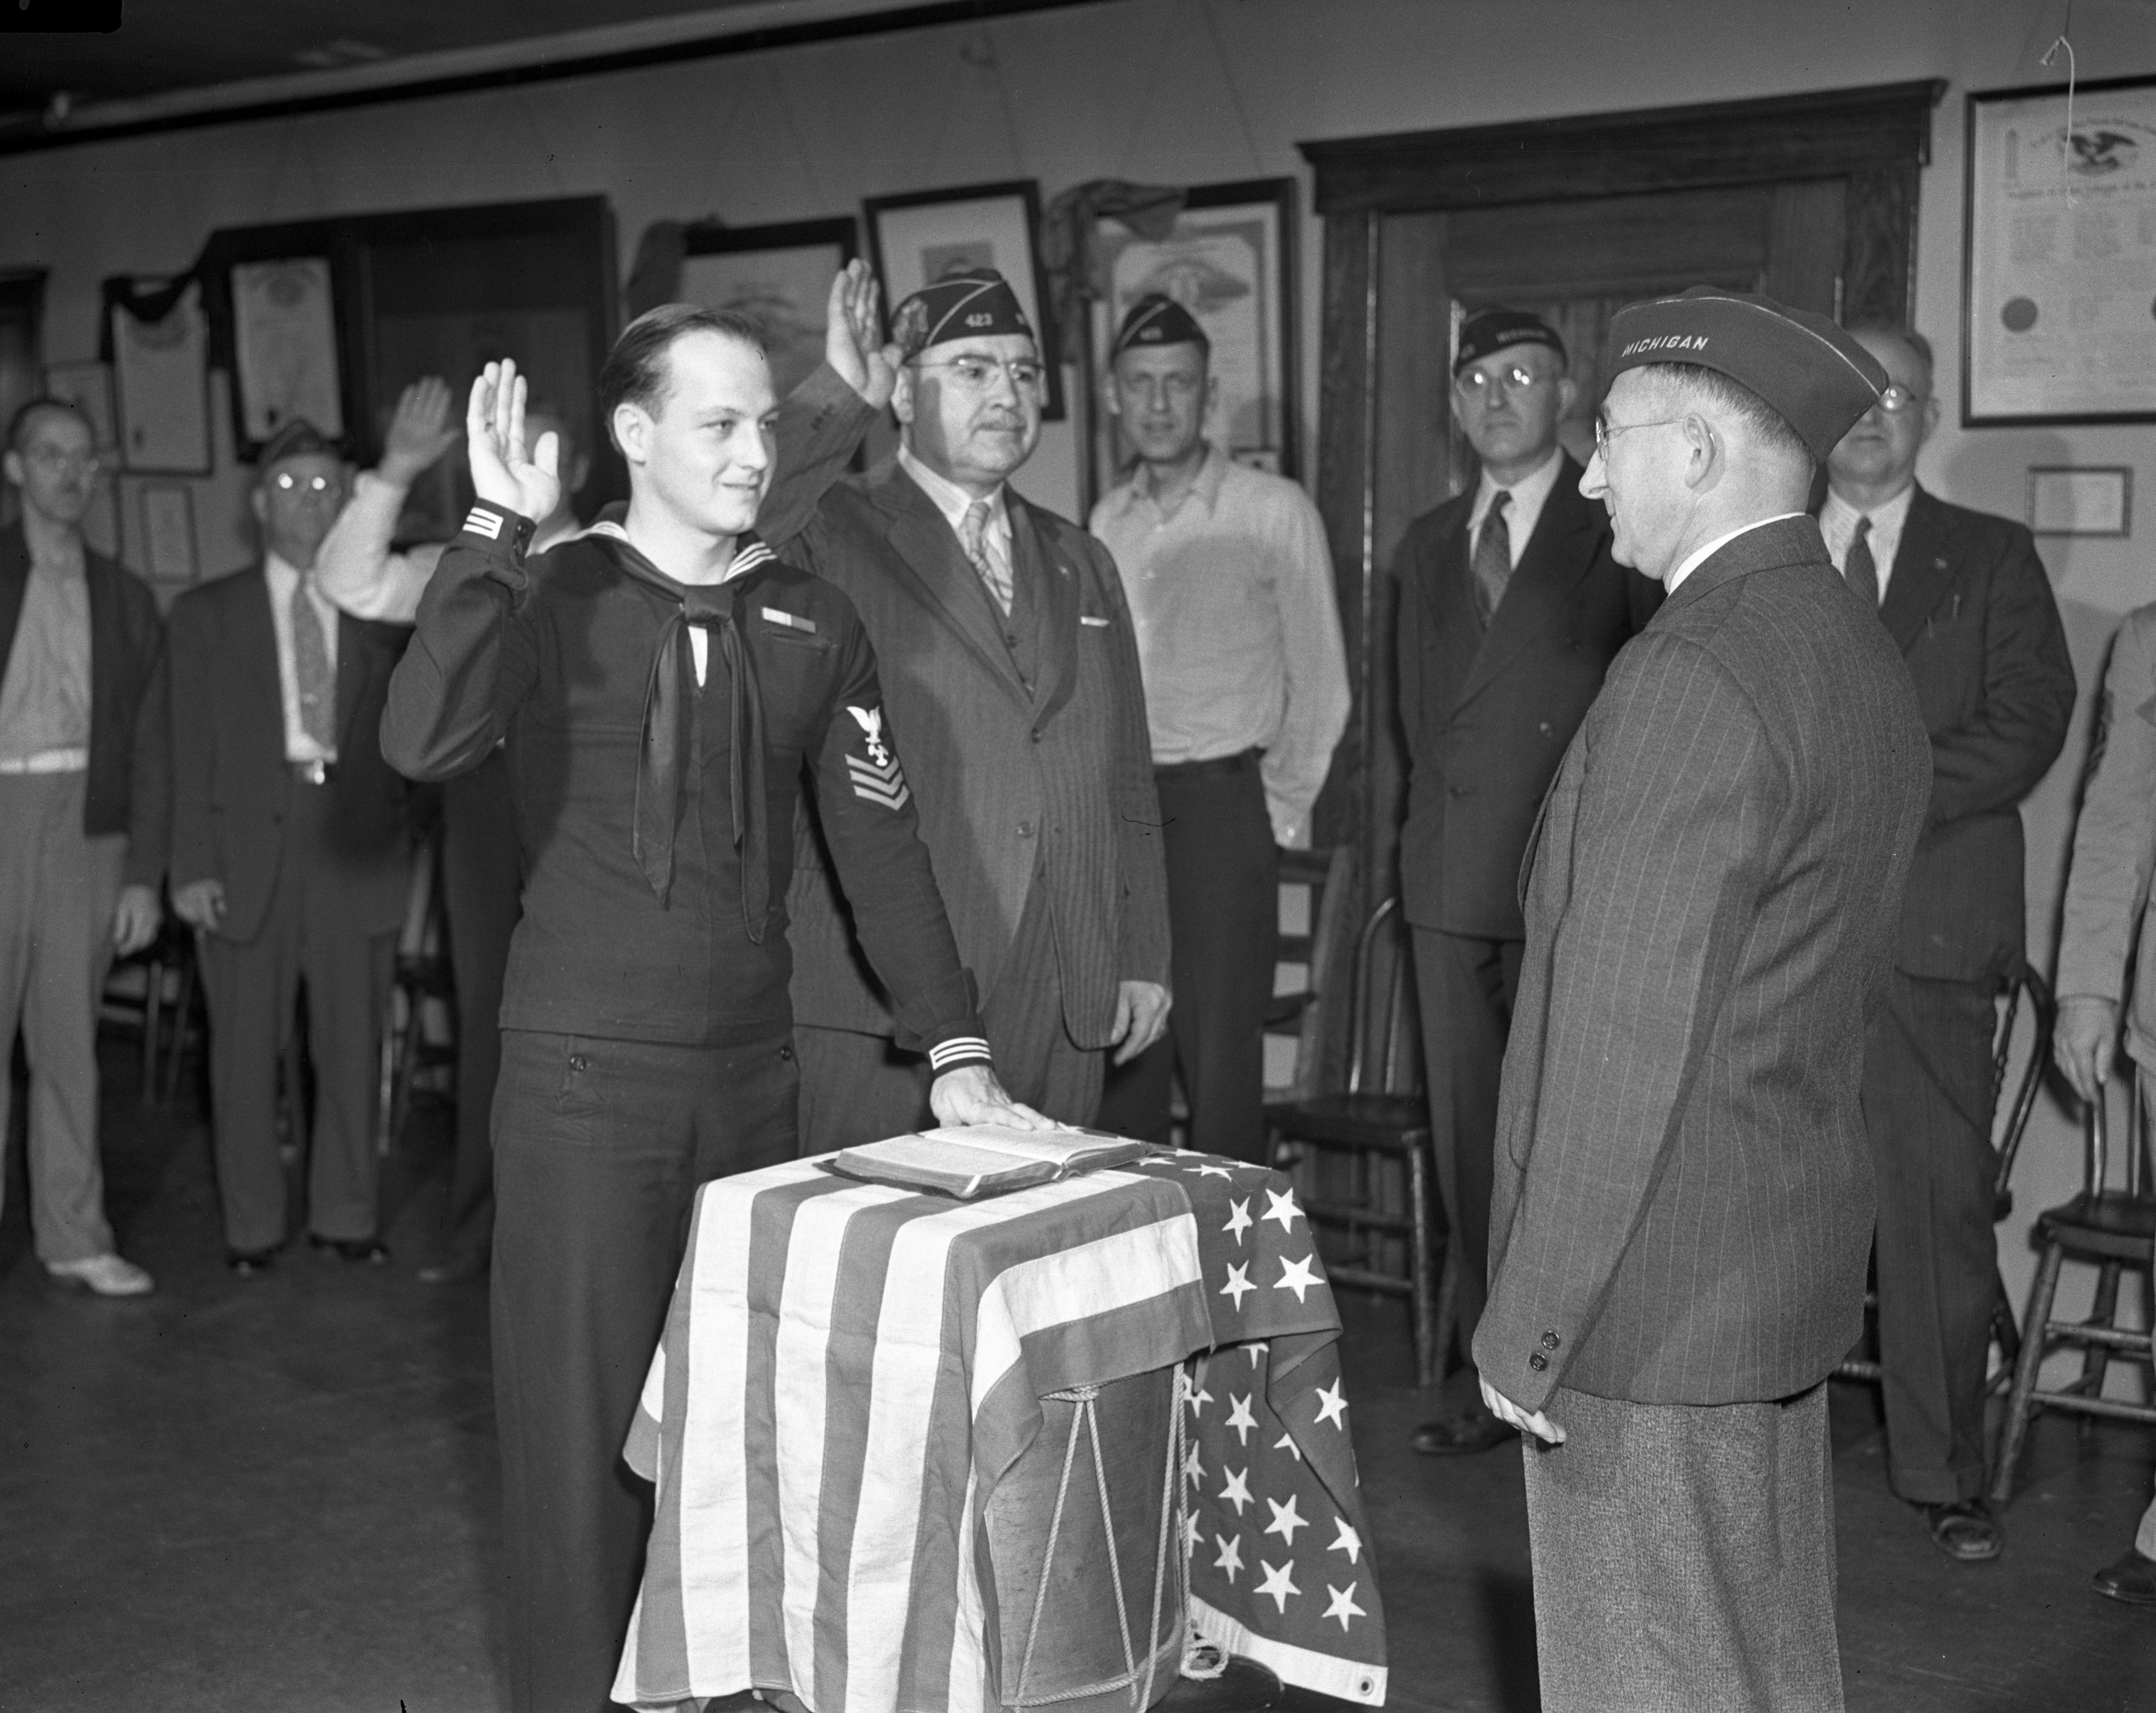 Petty Officer Fred R. Hough, First WWII veteran member of Graf O'Hara VFW post, June 1942 image